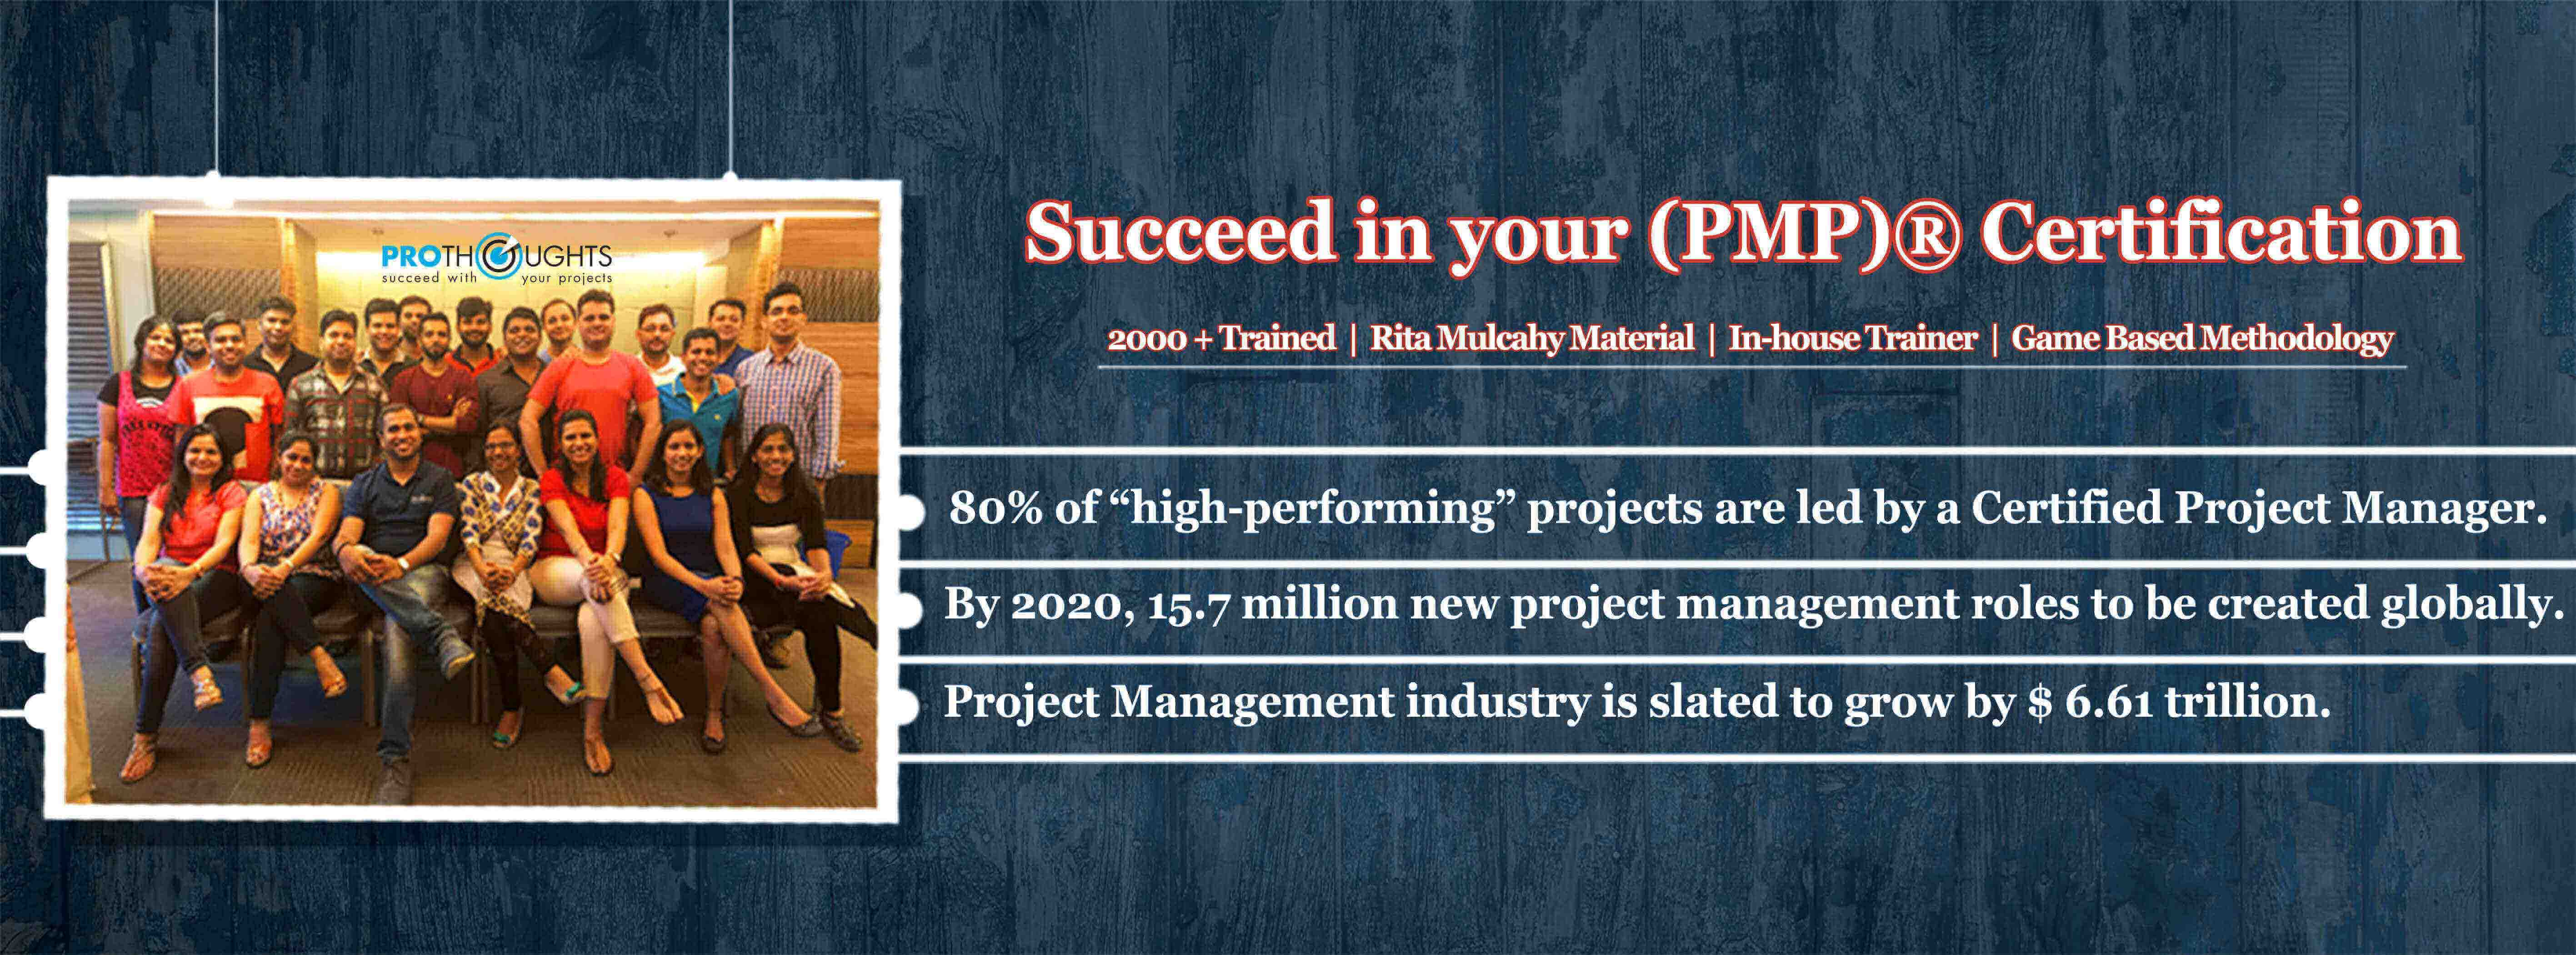 Pmp Certification Training Course In Mumbai Prothoughts